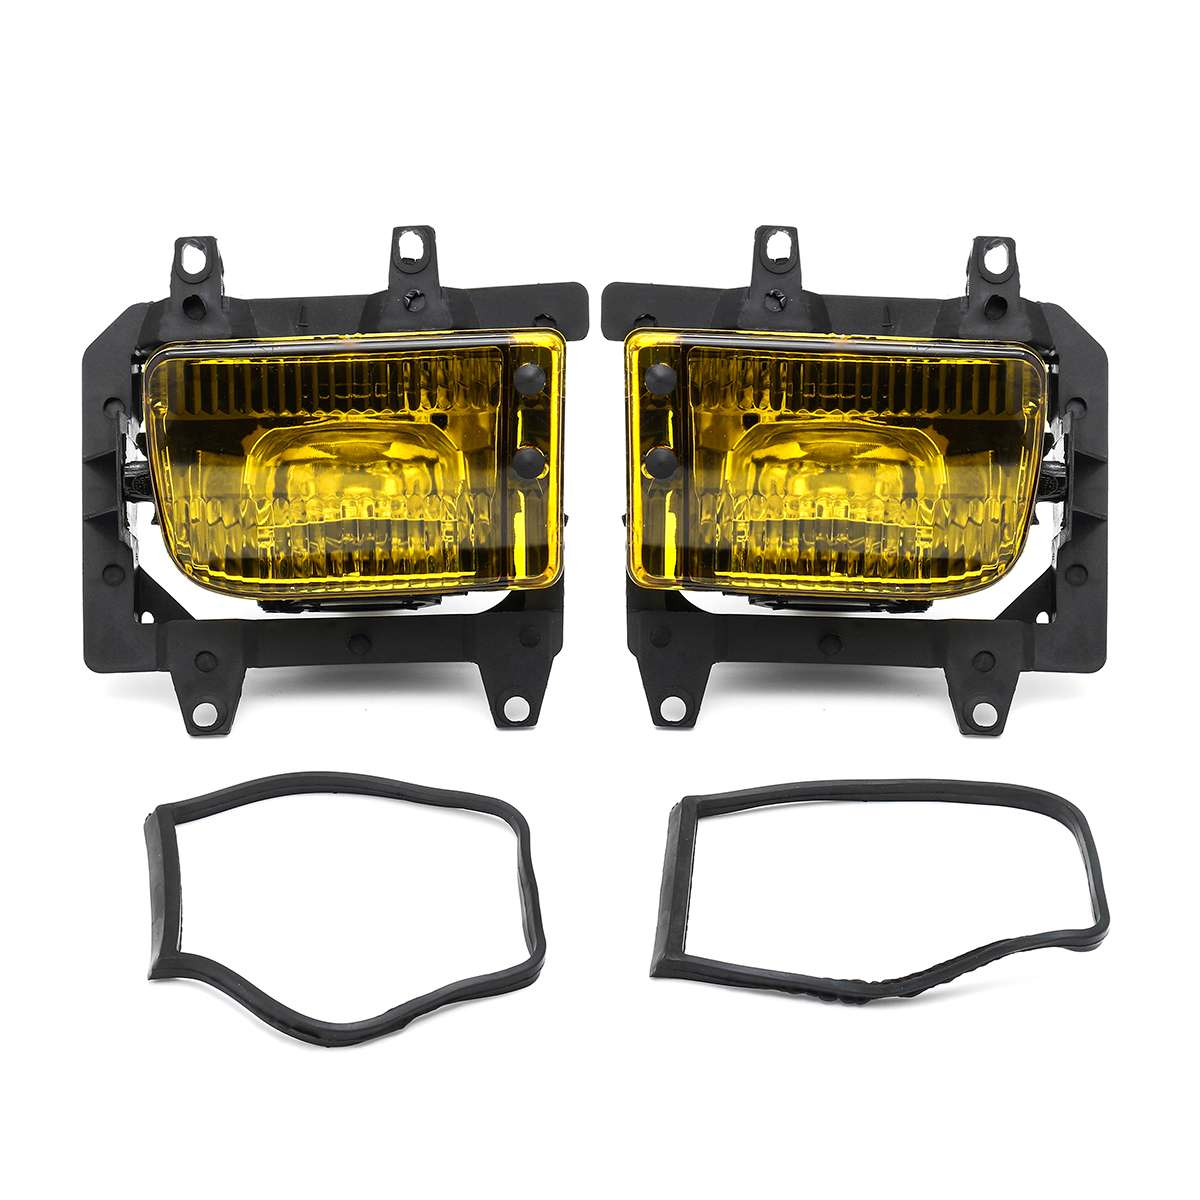 Pair Left+Right Front Fog Light Transparent Plastic Lens Kit no bulb for <font><b>BMW</b></font> <font><b>E30</b></font> 3-Series 1985-1993 Car <font><b>Accessories</b></font> Car Styling image